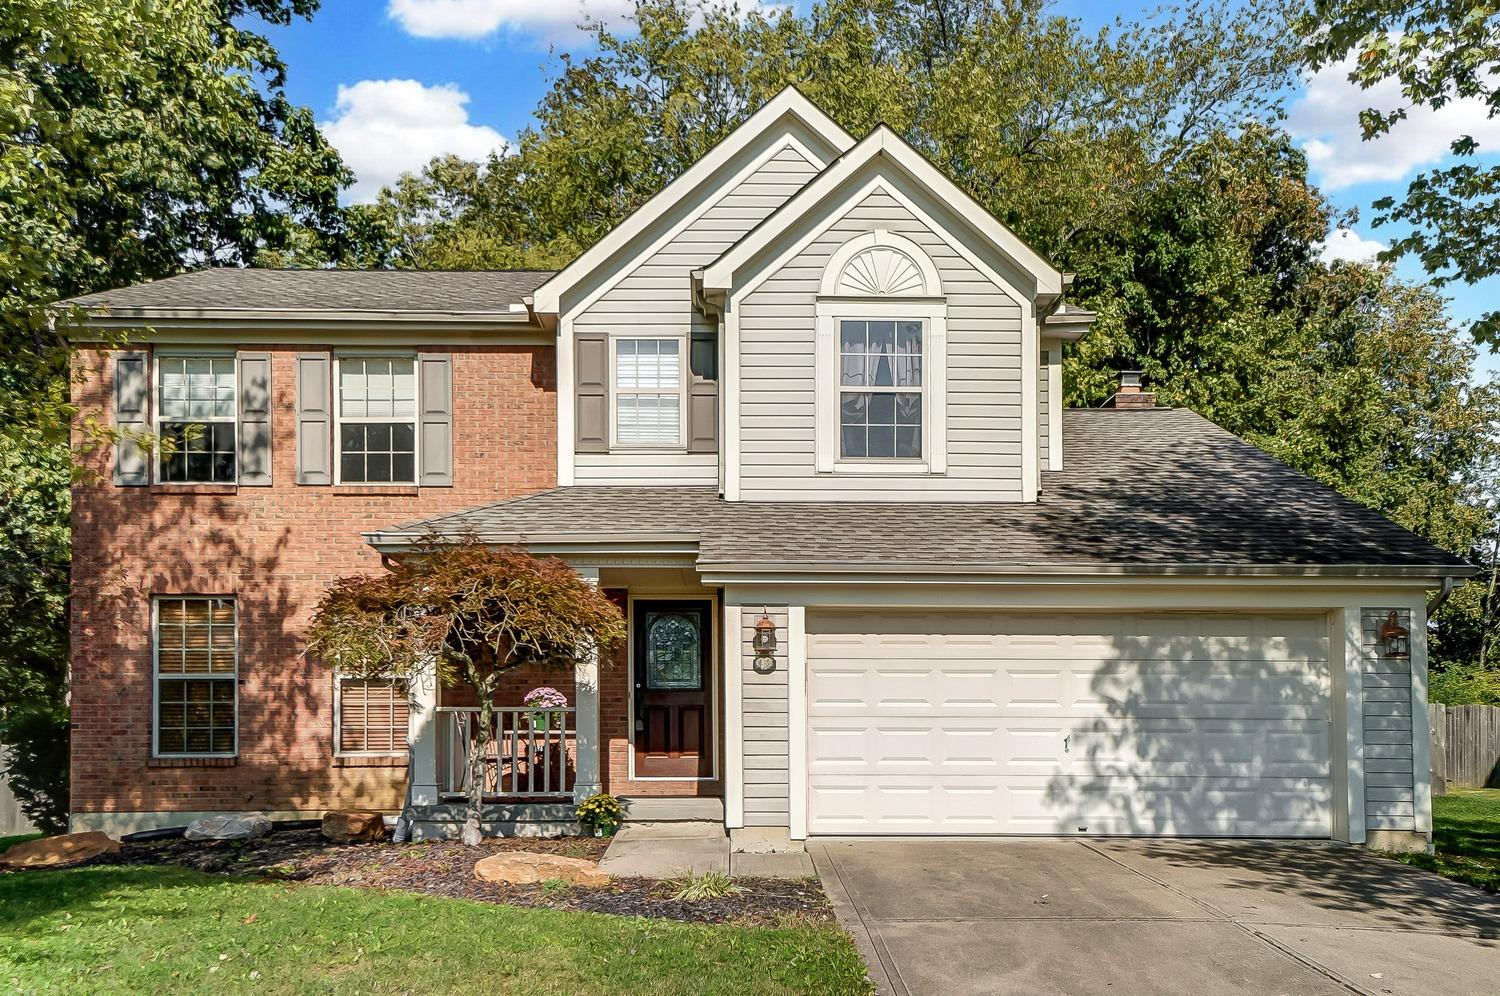 4577 Wood Forest Drive, Union Twp, Ohio 45103, 4 Bedrooms Bedrooms, 10 Rooms Rooms,2 BathroomsBathrooms,Single Family Residence,For Sale,Wood Forest,1719112